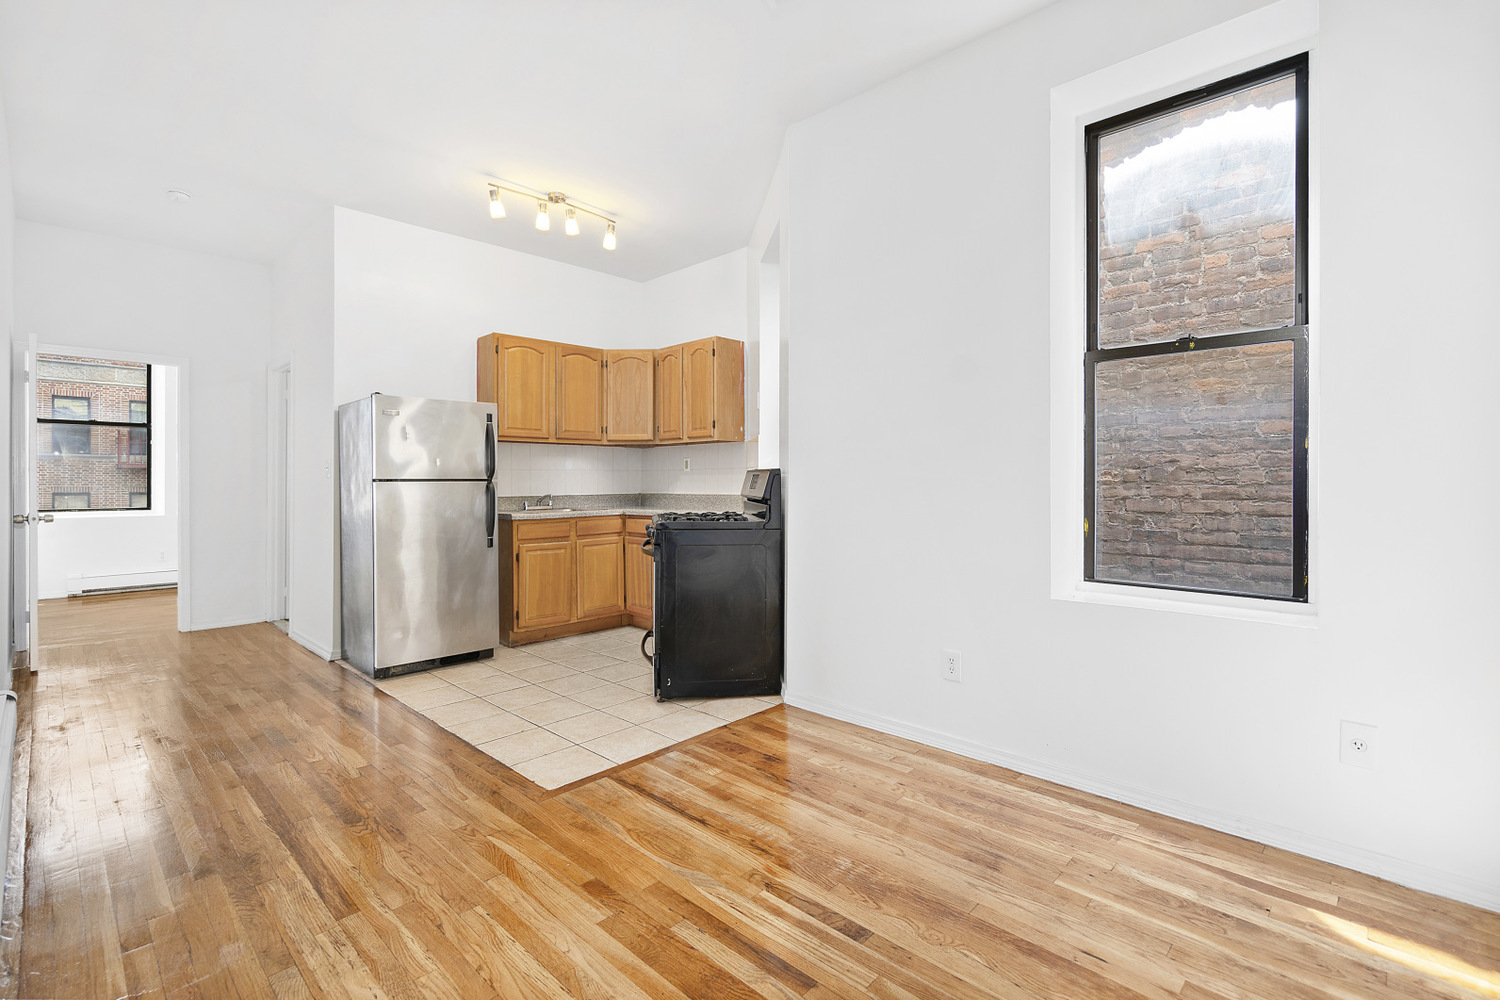 276 Throop Avenue, Unit 1D Brooklyn, NY 11206